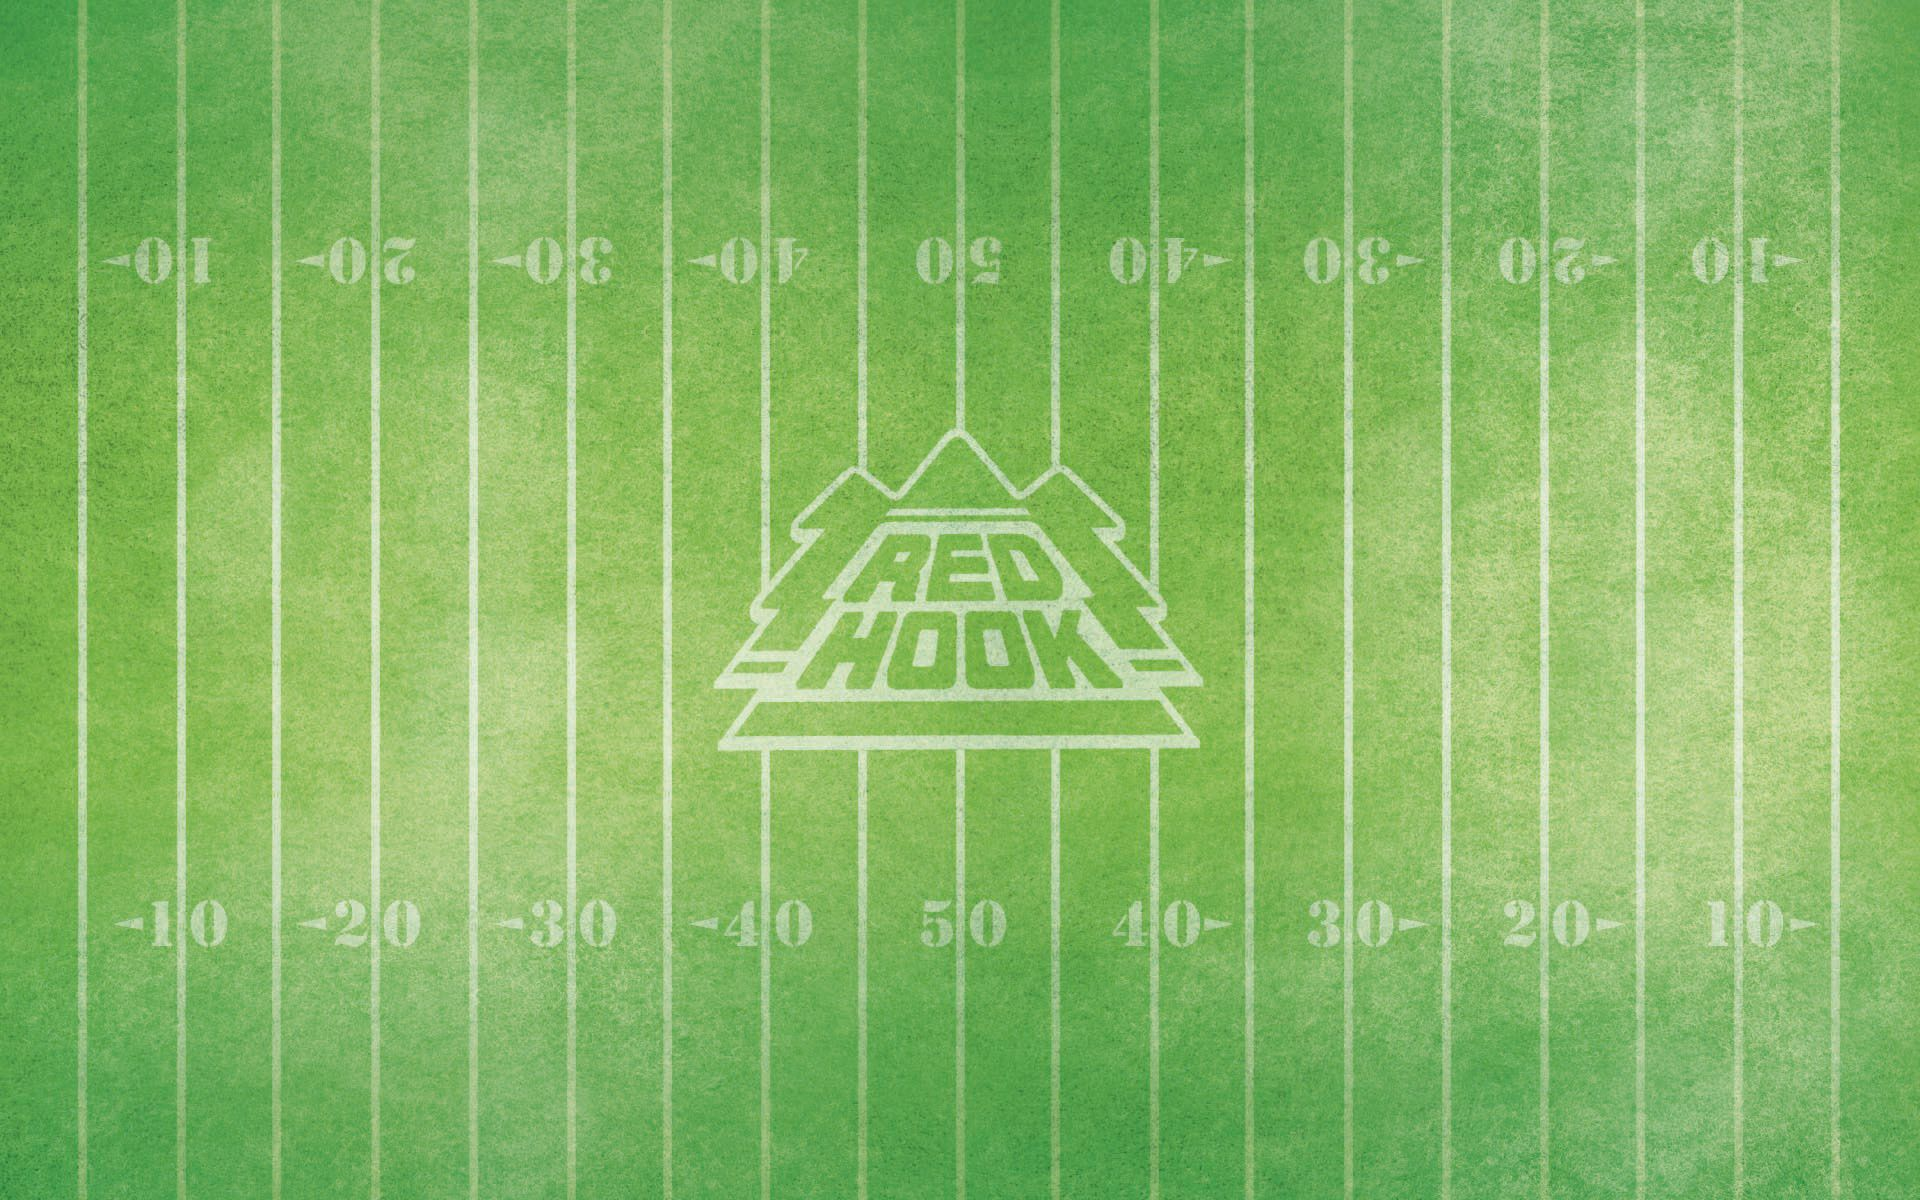 Football Field Backgrounds  PixelsTalk Net